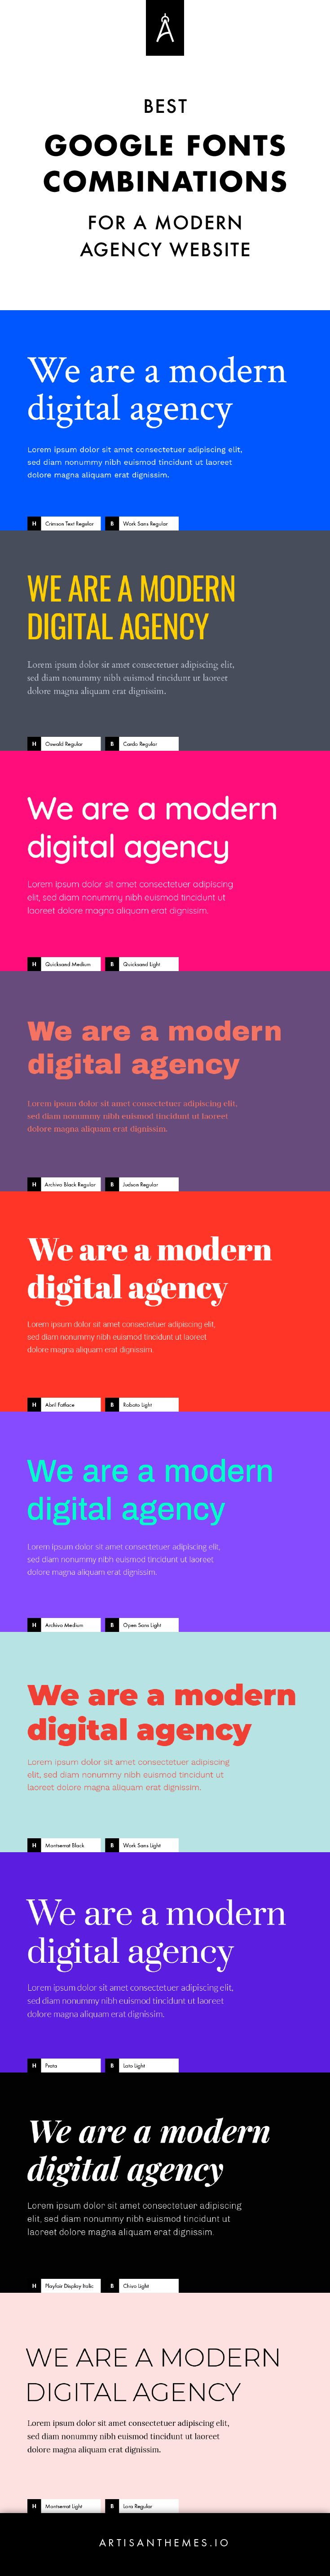 10 Best Google Fonts Combinations for a Modern Agency Website (Including Color Palettes!) - Artisan Themes